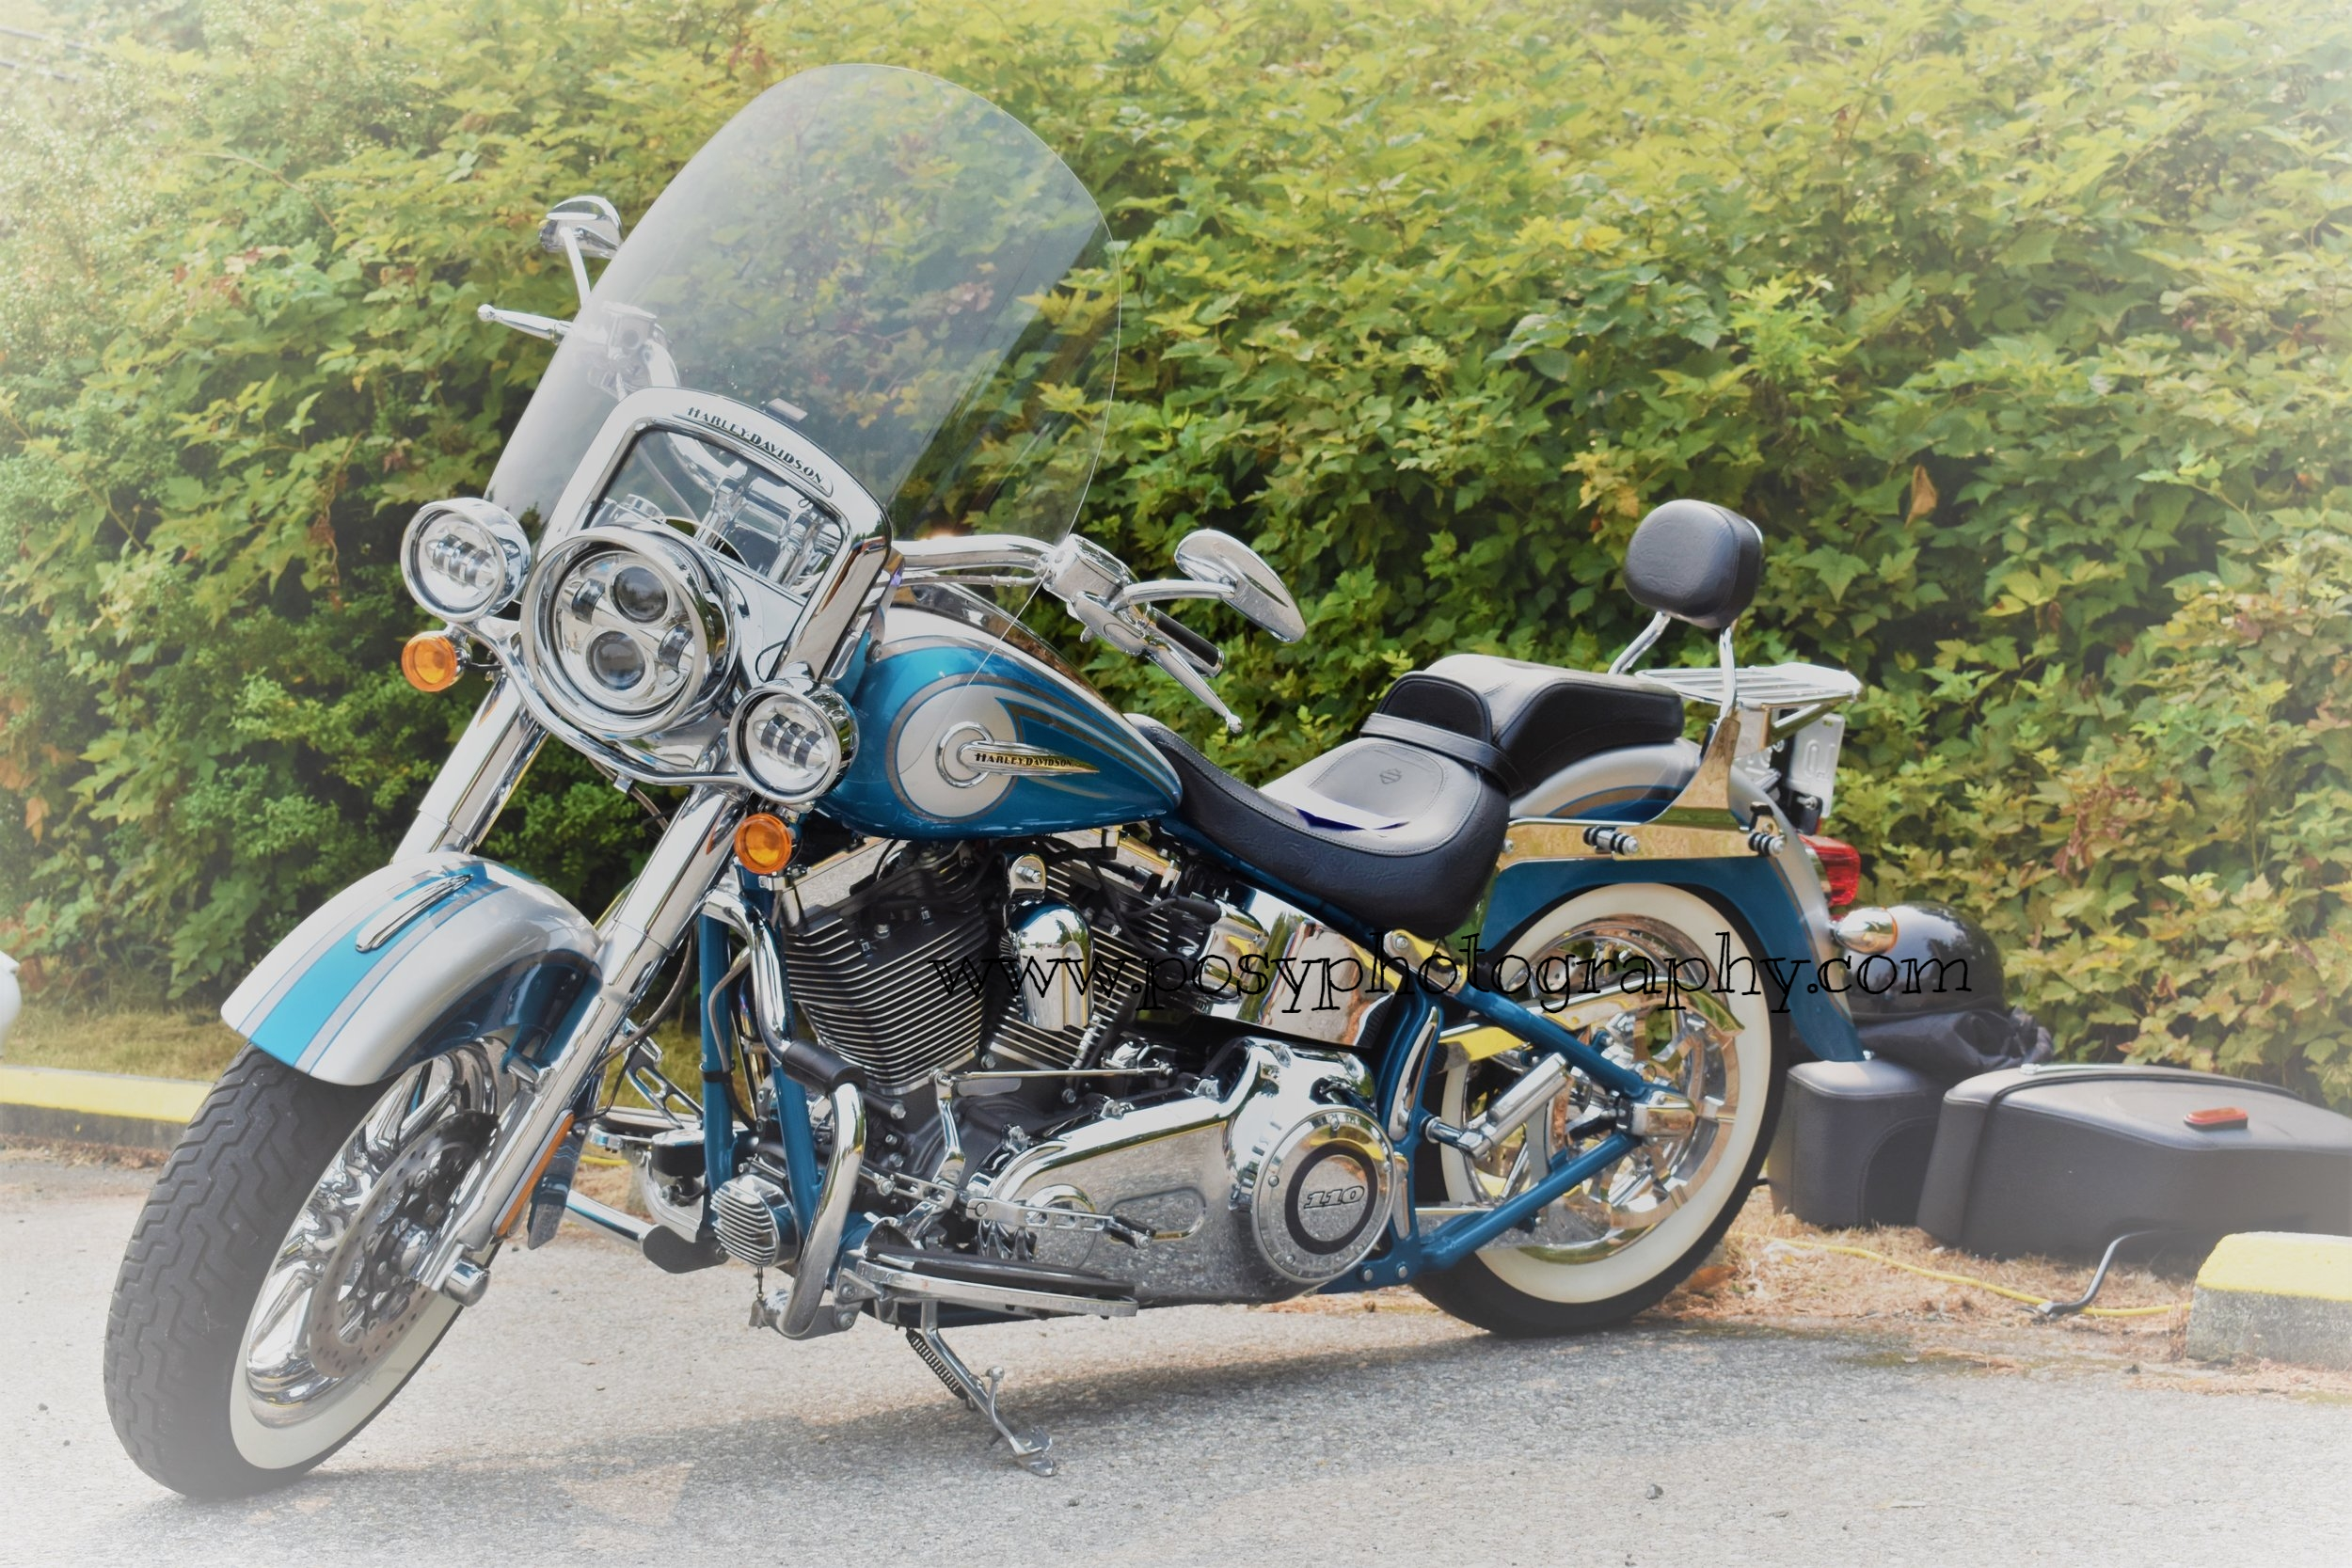 Pender Harbour Car Show - Motorbike photography